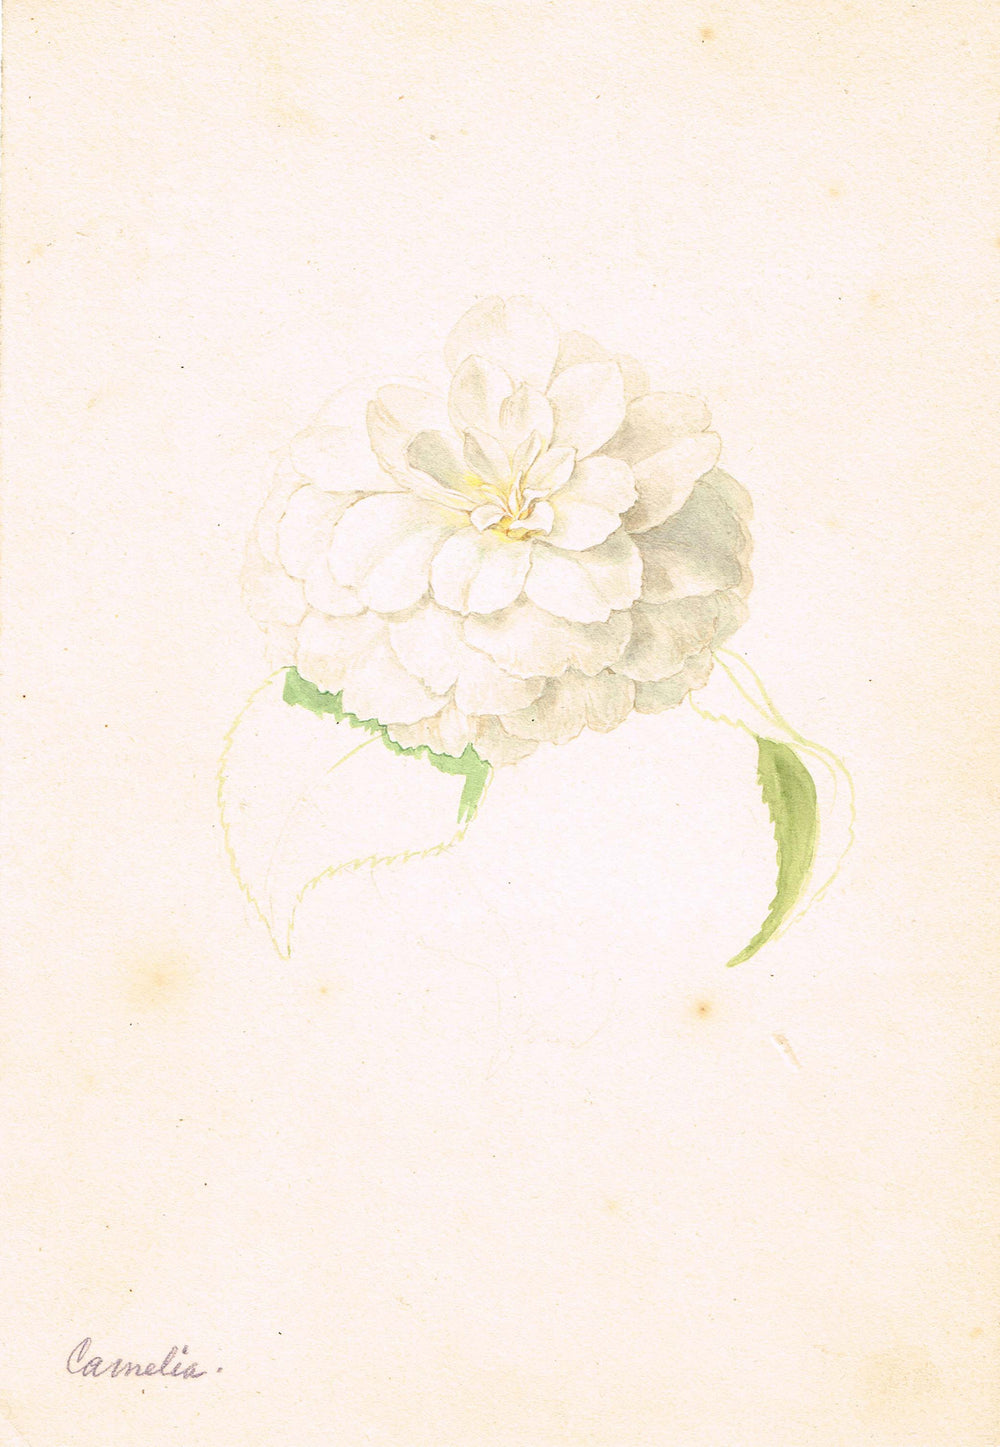 Camellia Old Master Drawing - appleboutique-com